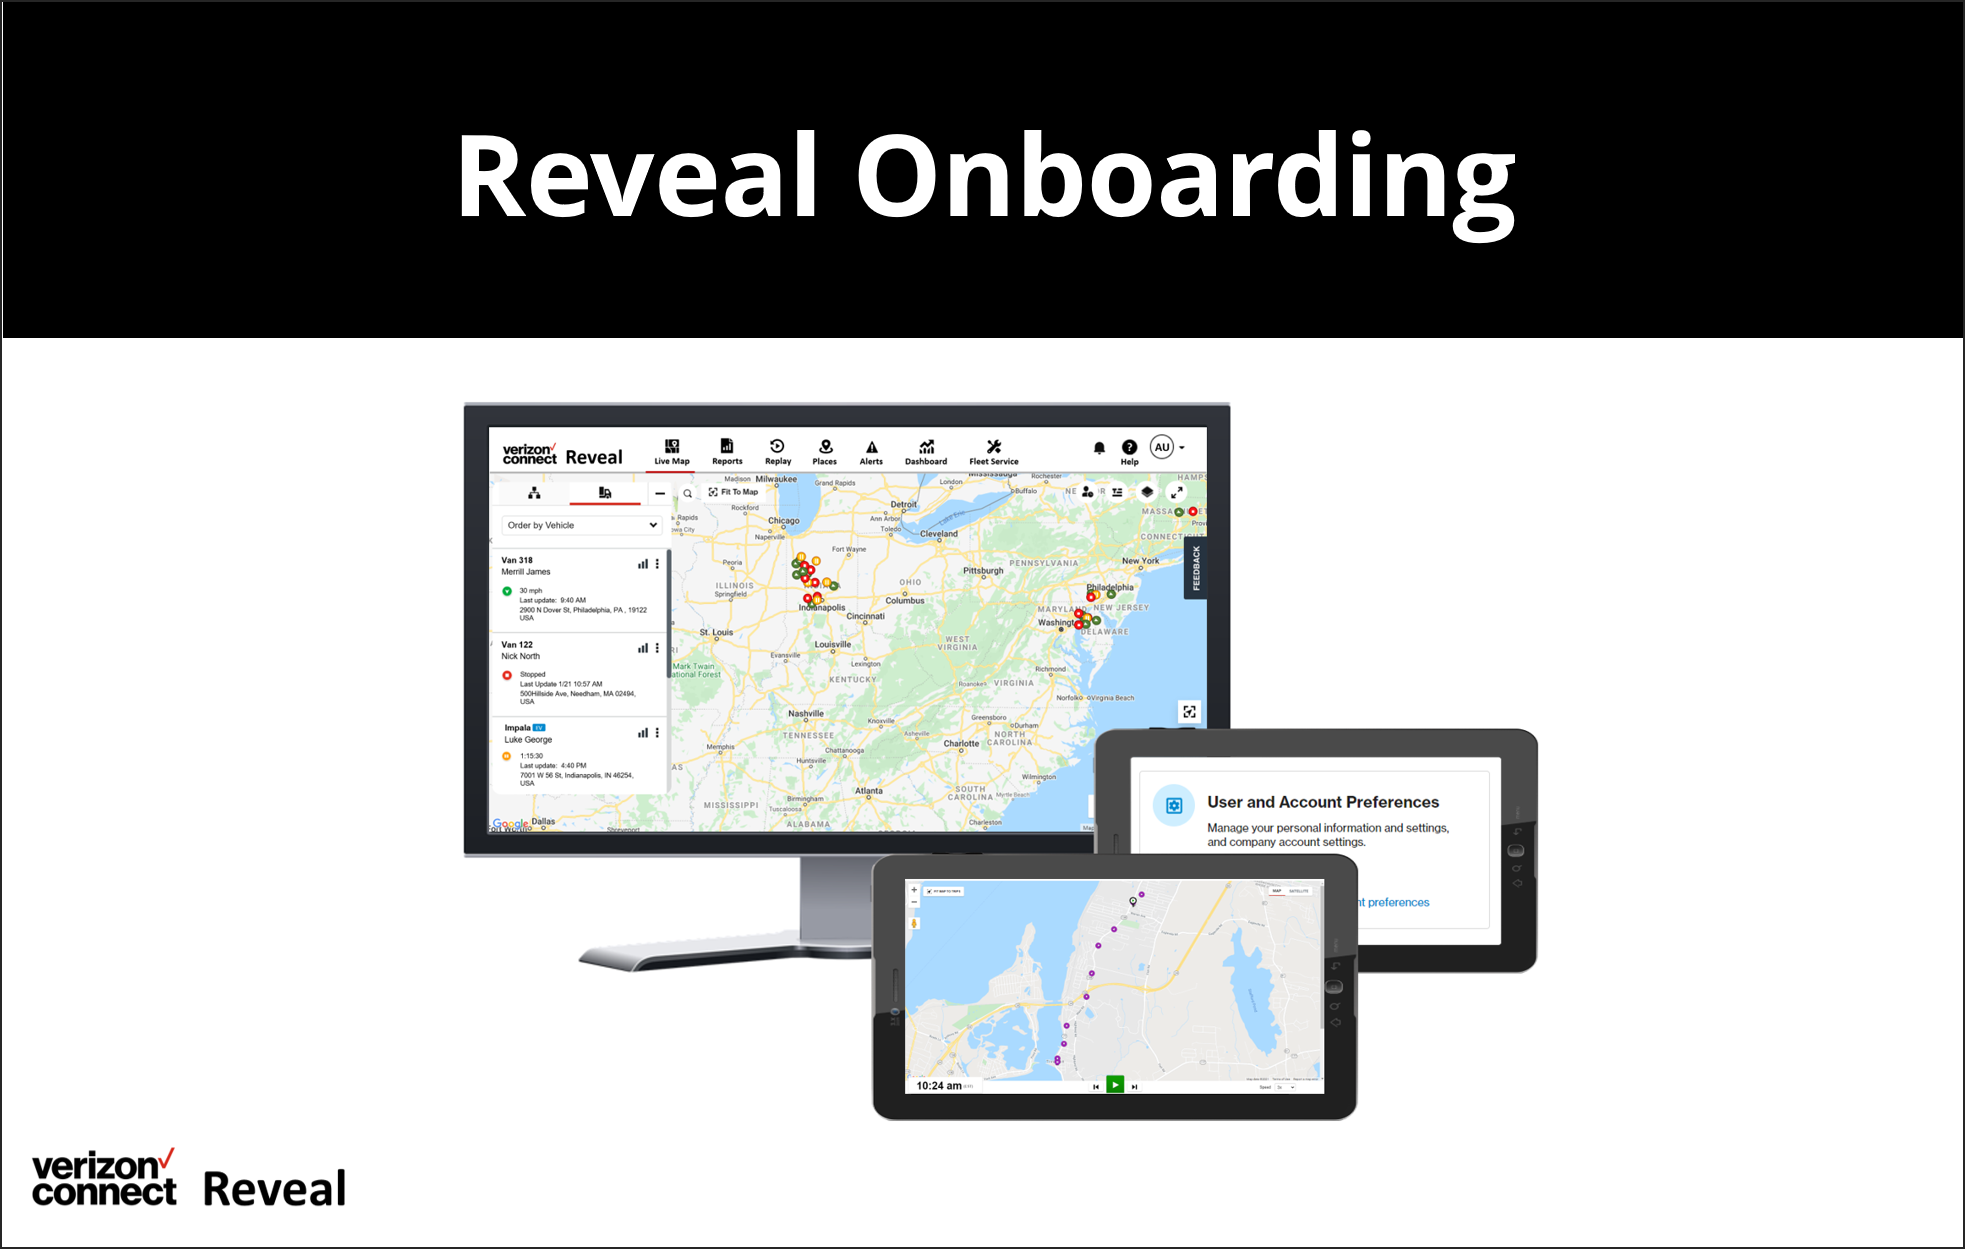 Reveal Onboarding eTutorial